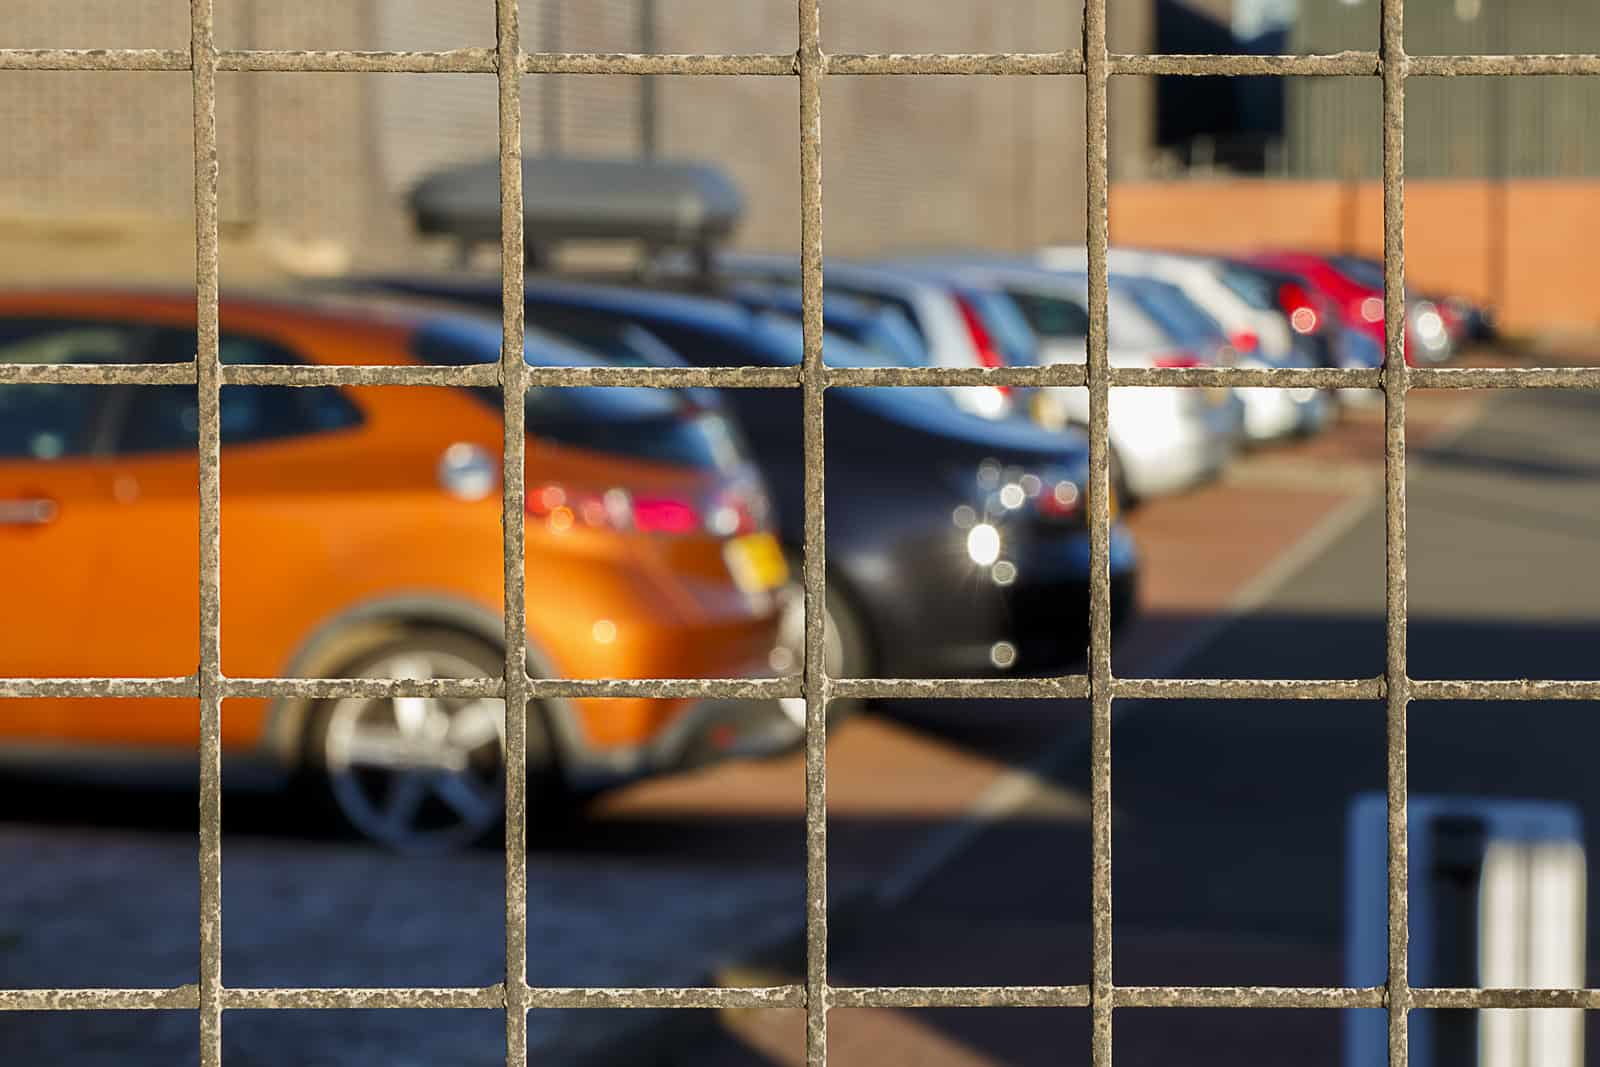 A line of cars behind fence from being impounded after a dui arrest